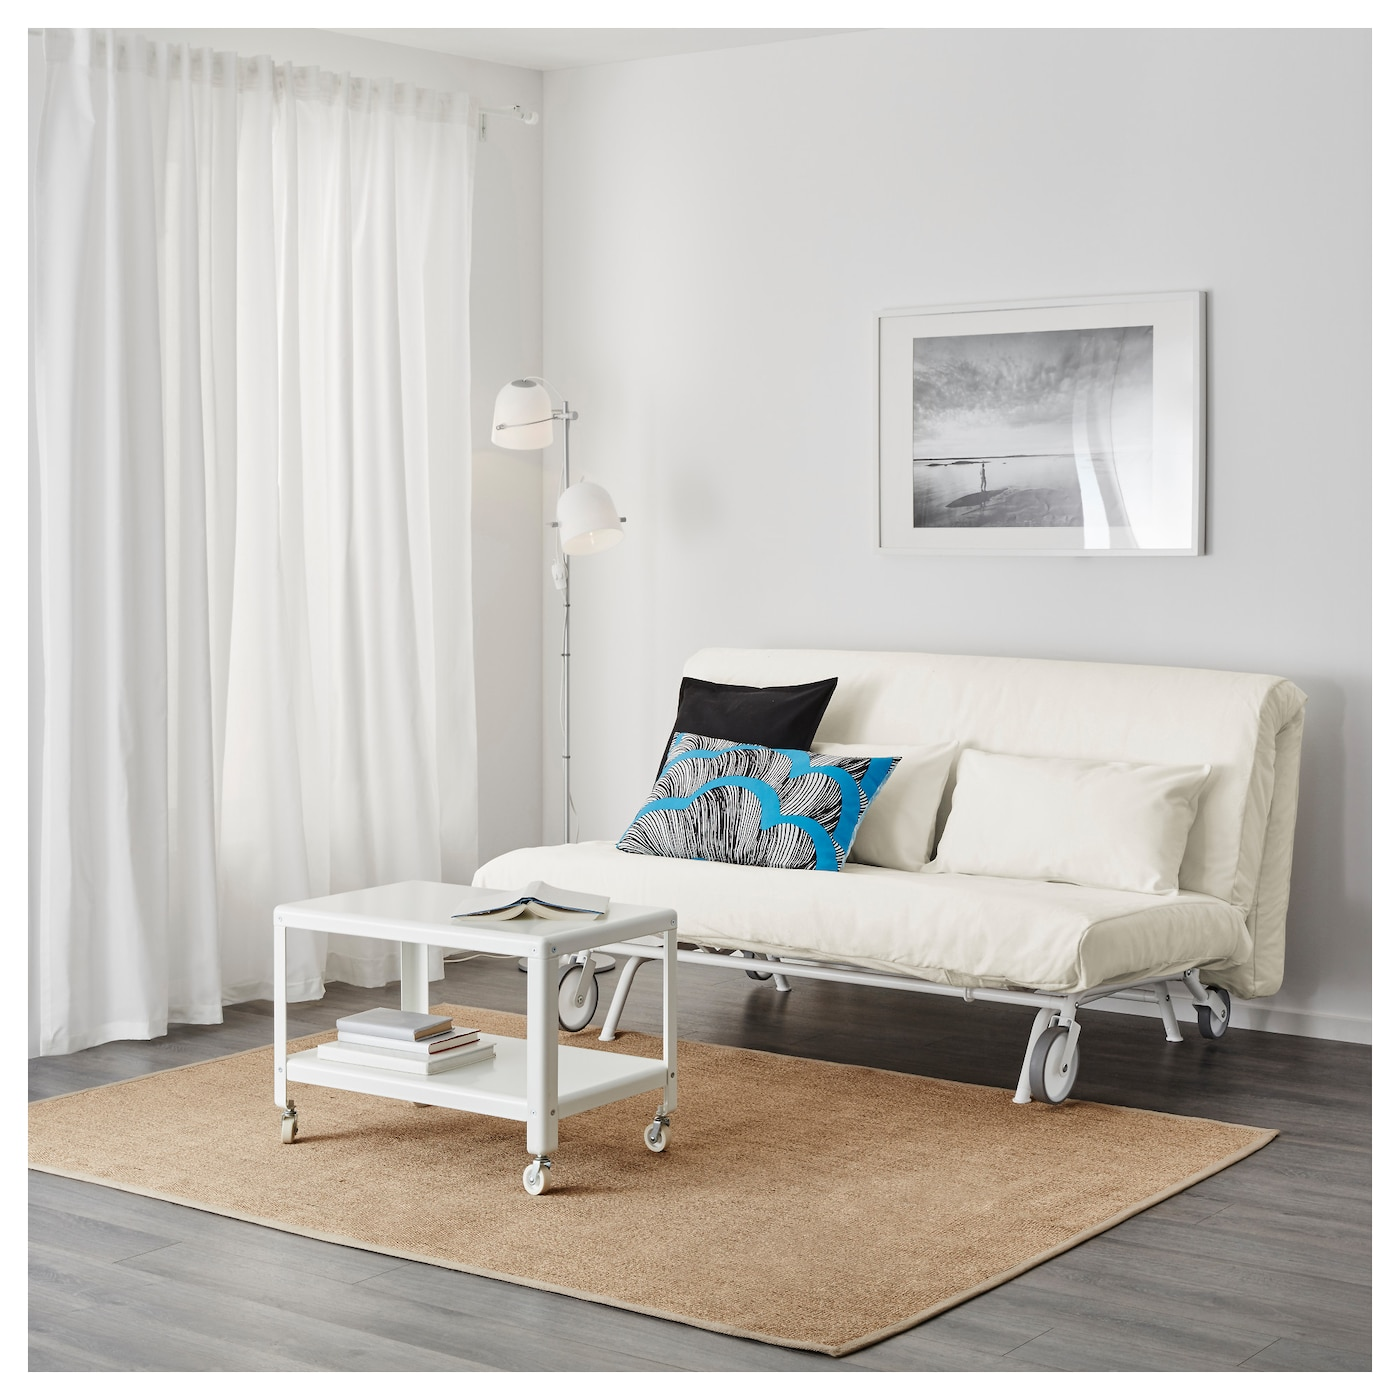 IKEA PS LVS Twoseat sofabed Grsbo white IKEA